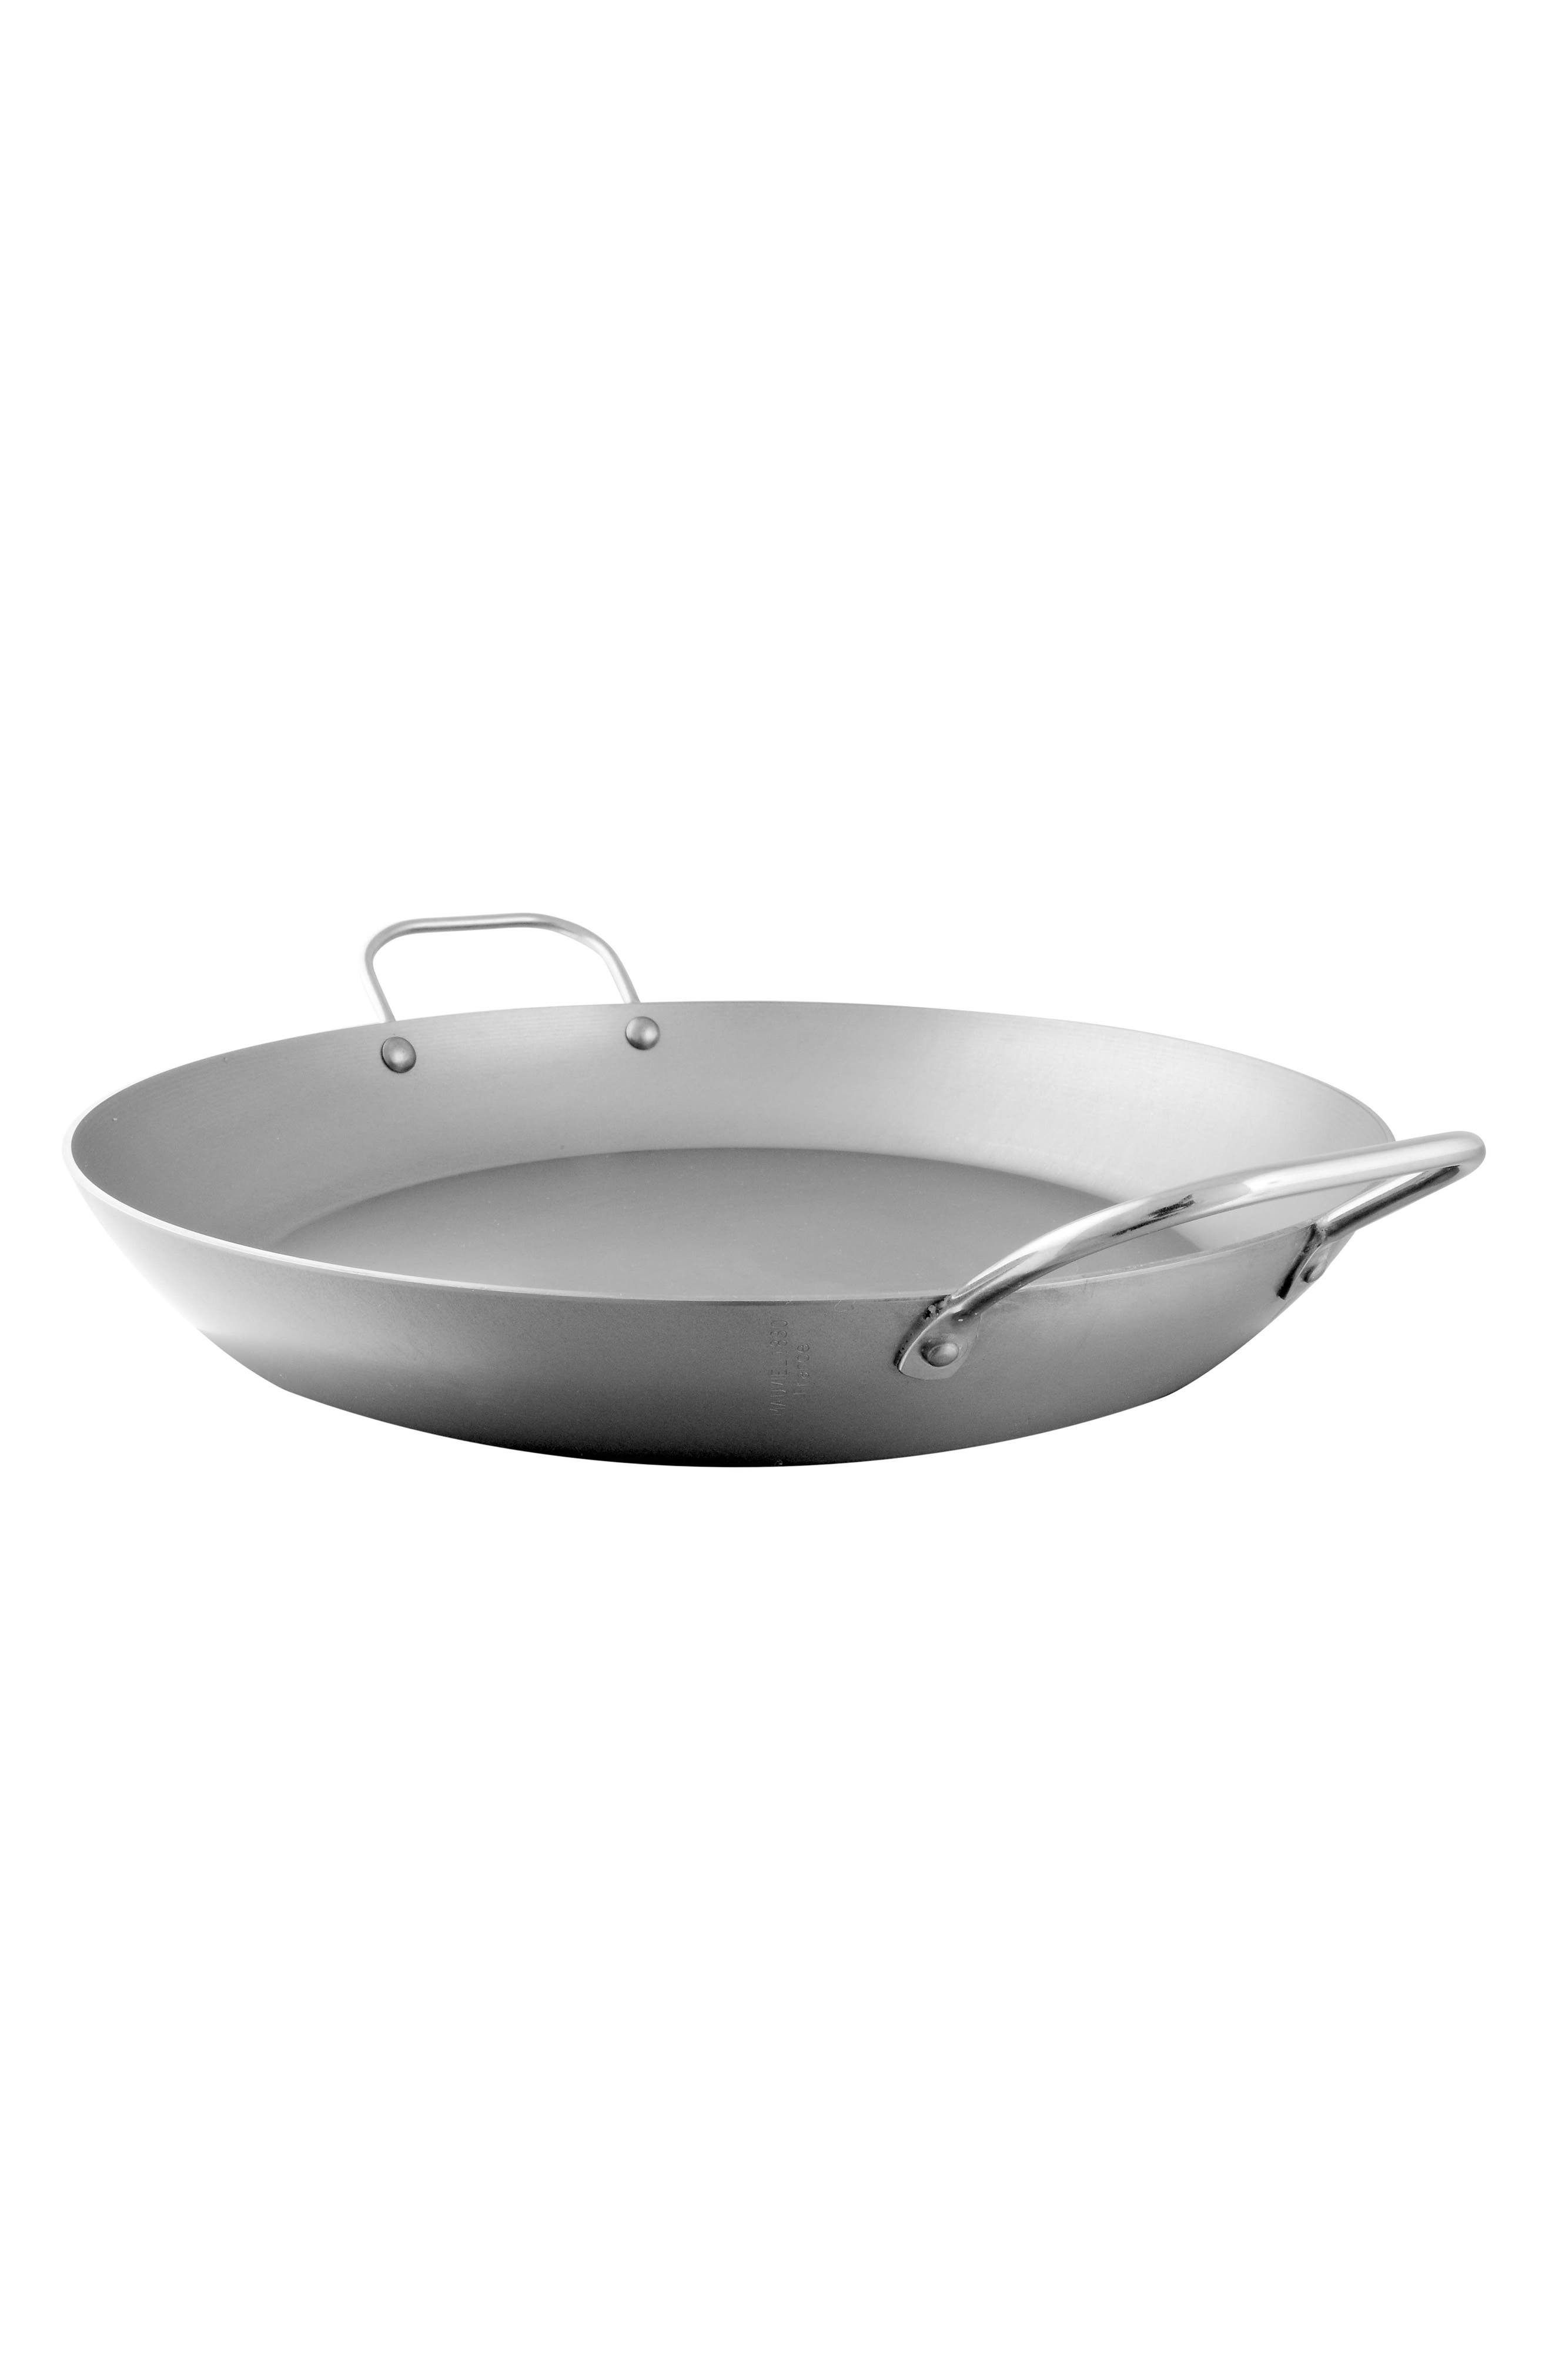 M'steel Carbon Steel Paella Pan,                         Main,                         color, Steel